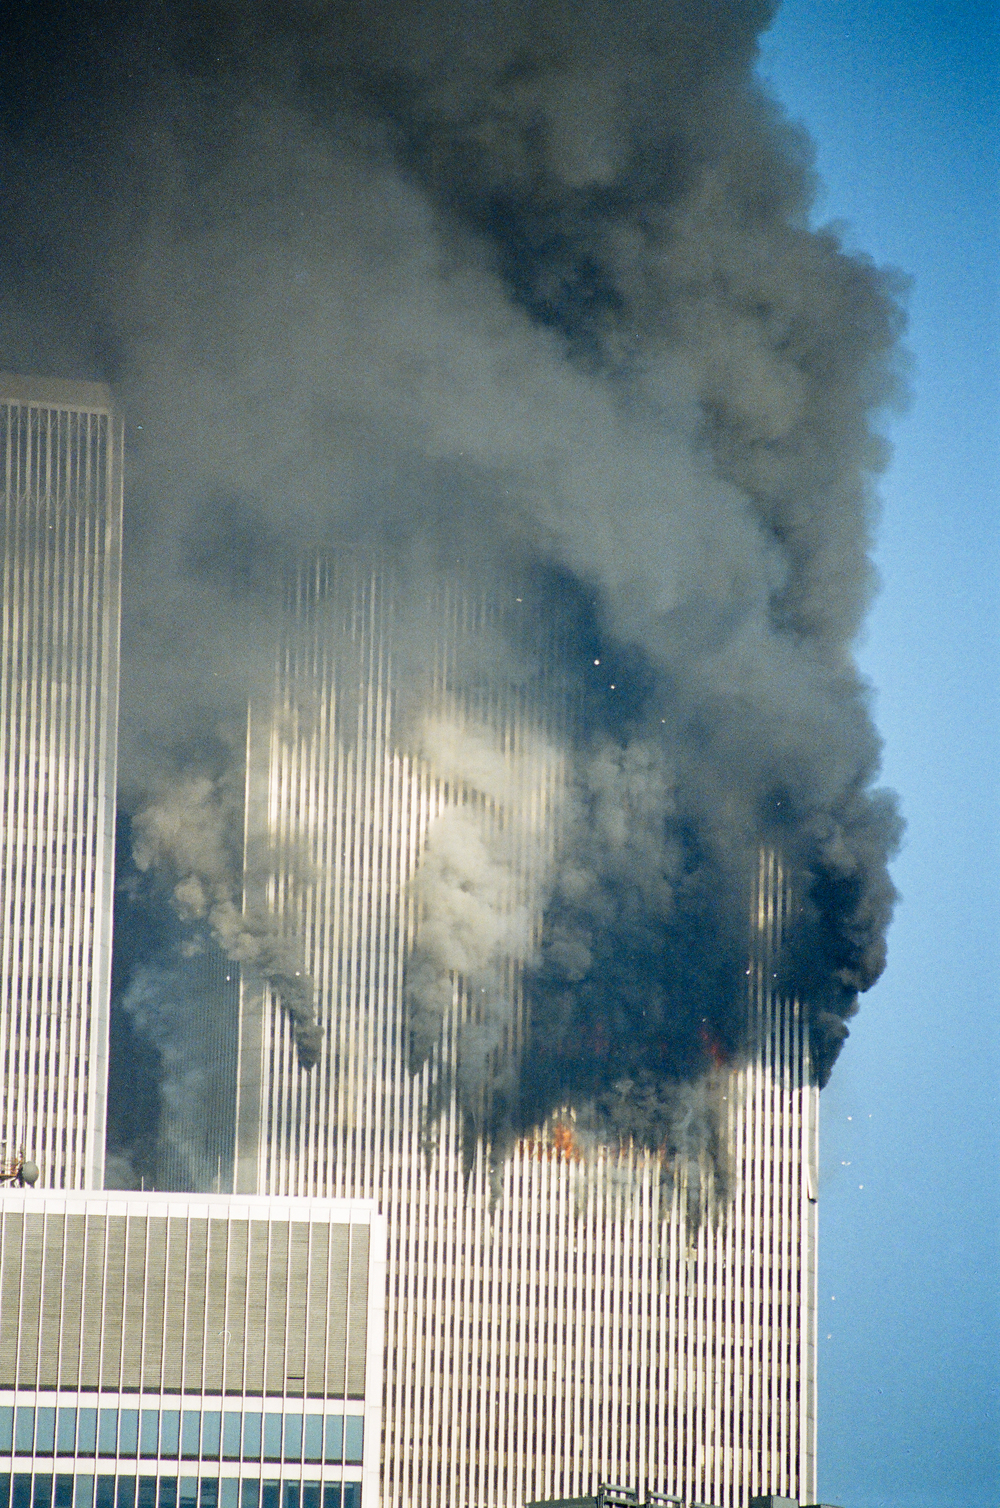 Day 1, North Tower jet fuel fire, photo by Ski Shields